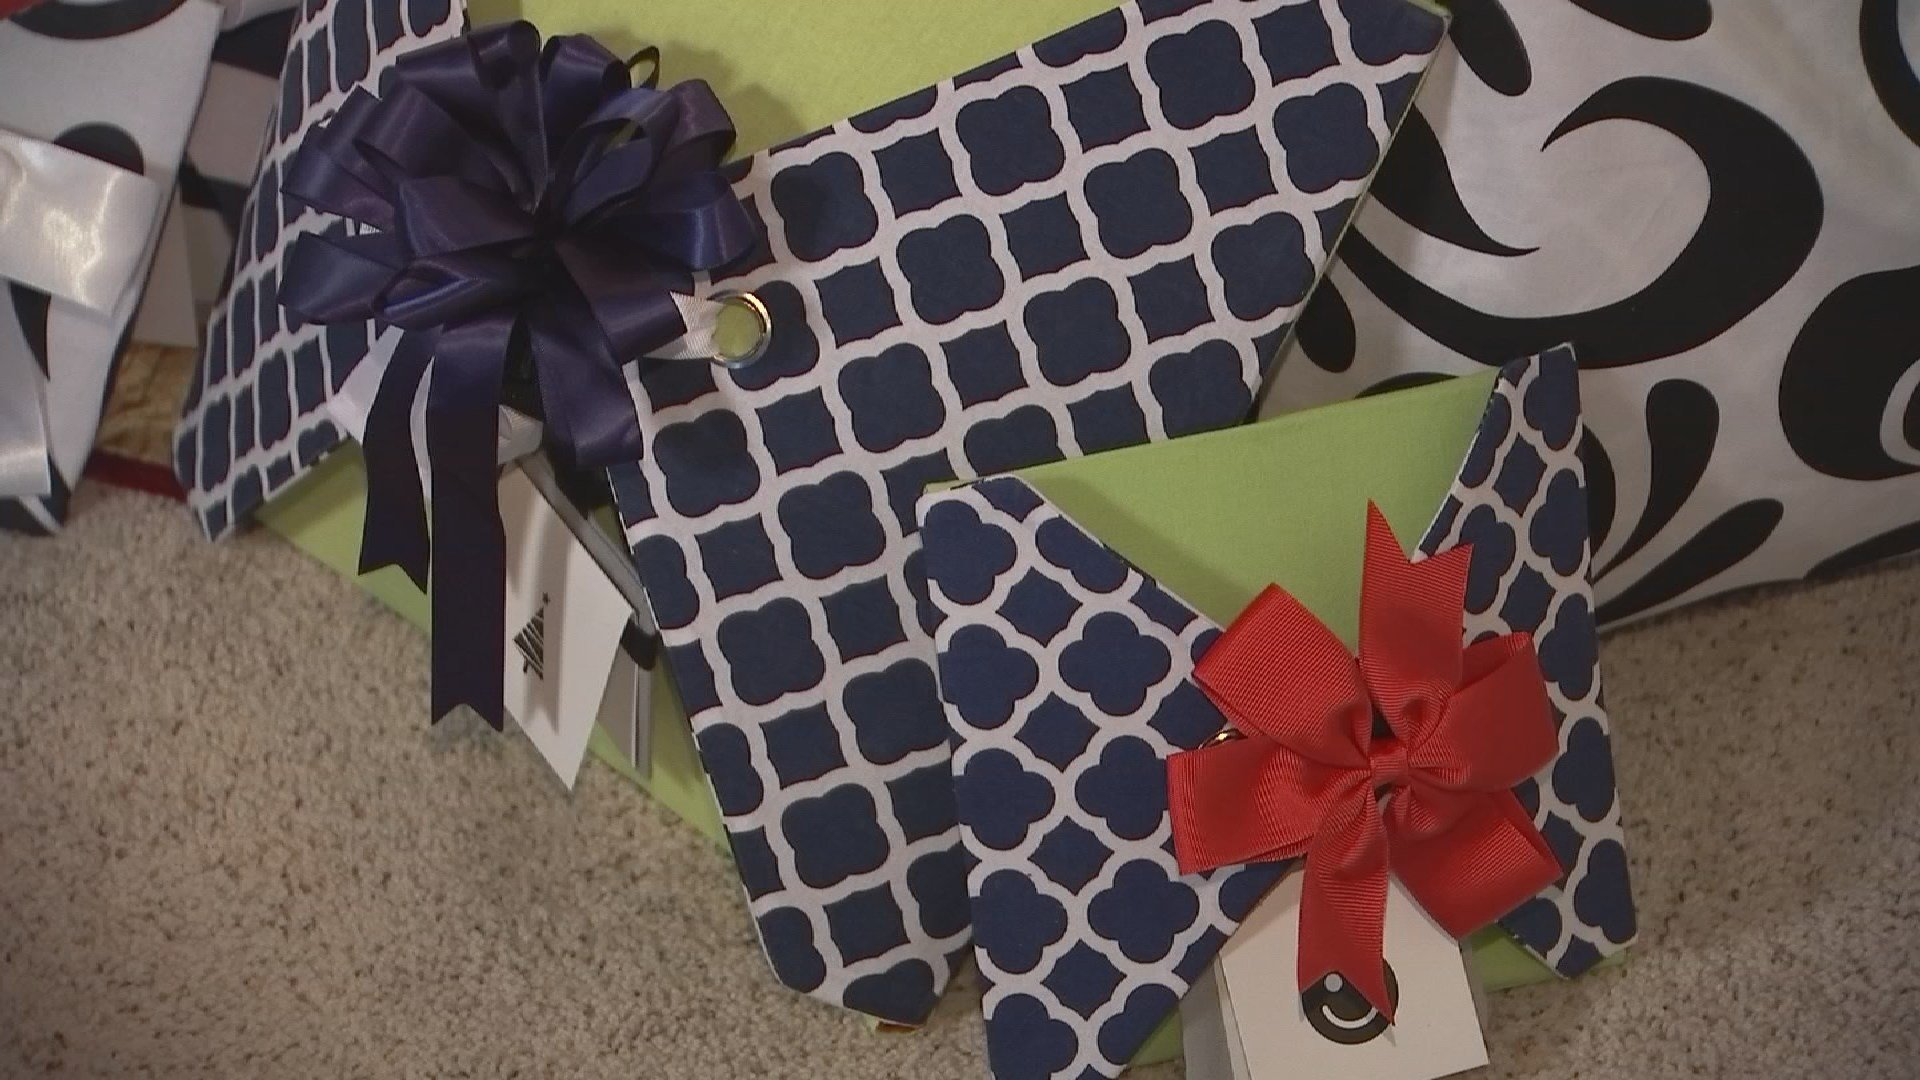 Eco-friendly gift wrapping paper. 20 Nov. 2017 (Source: 3TV/CBS 5 News)